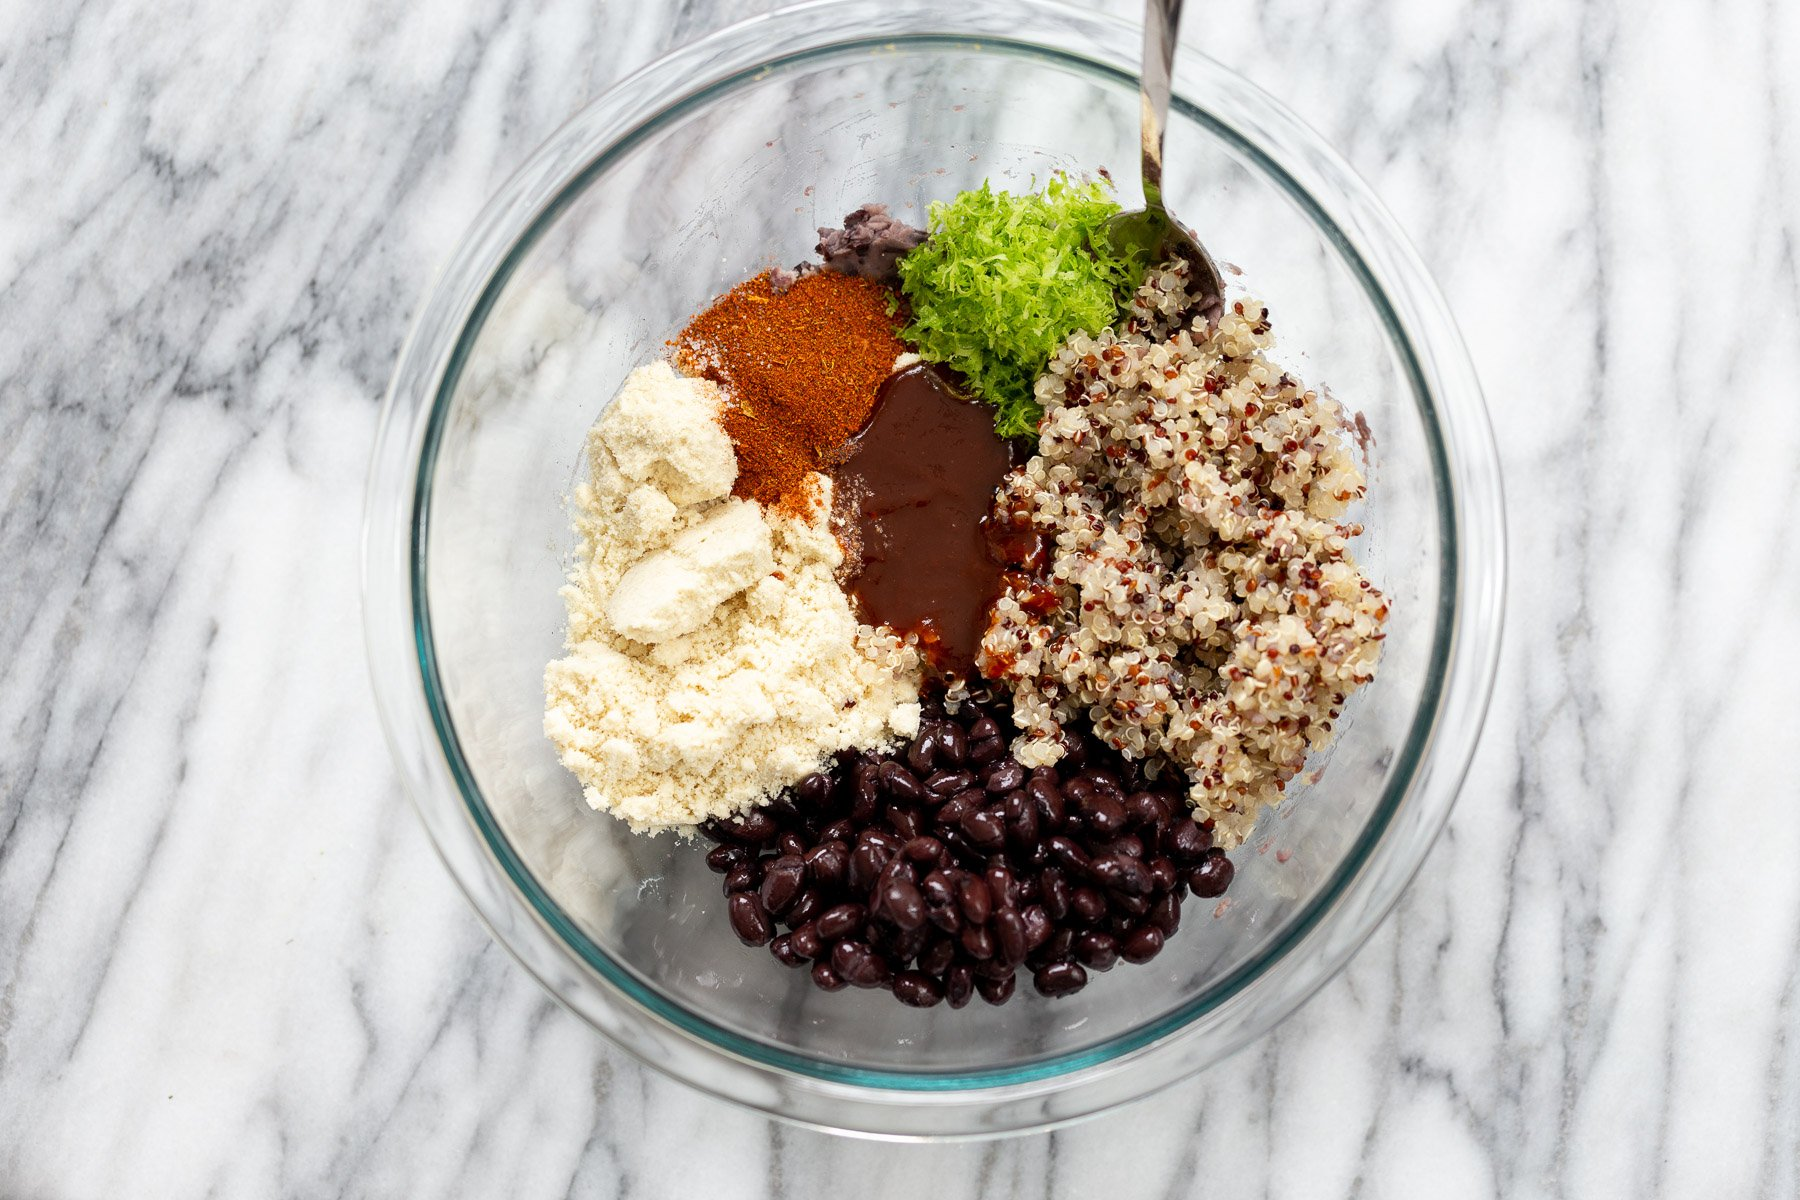 ingredients for making black bean quinoa patties gathered in a glass bowl